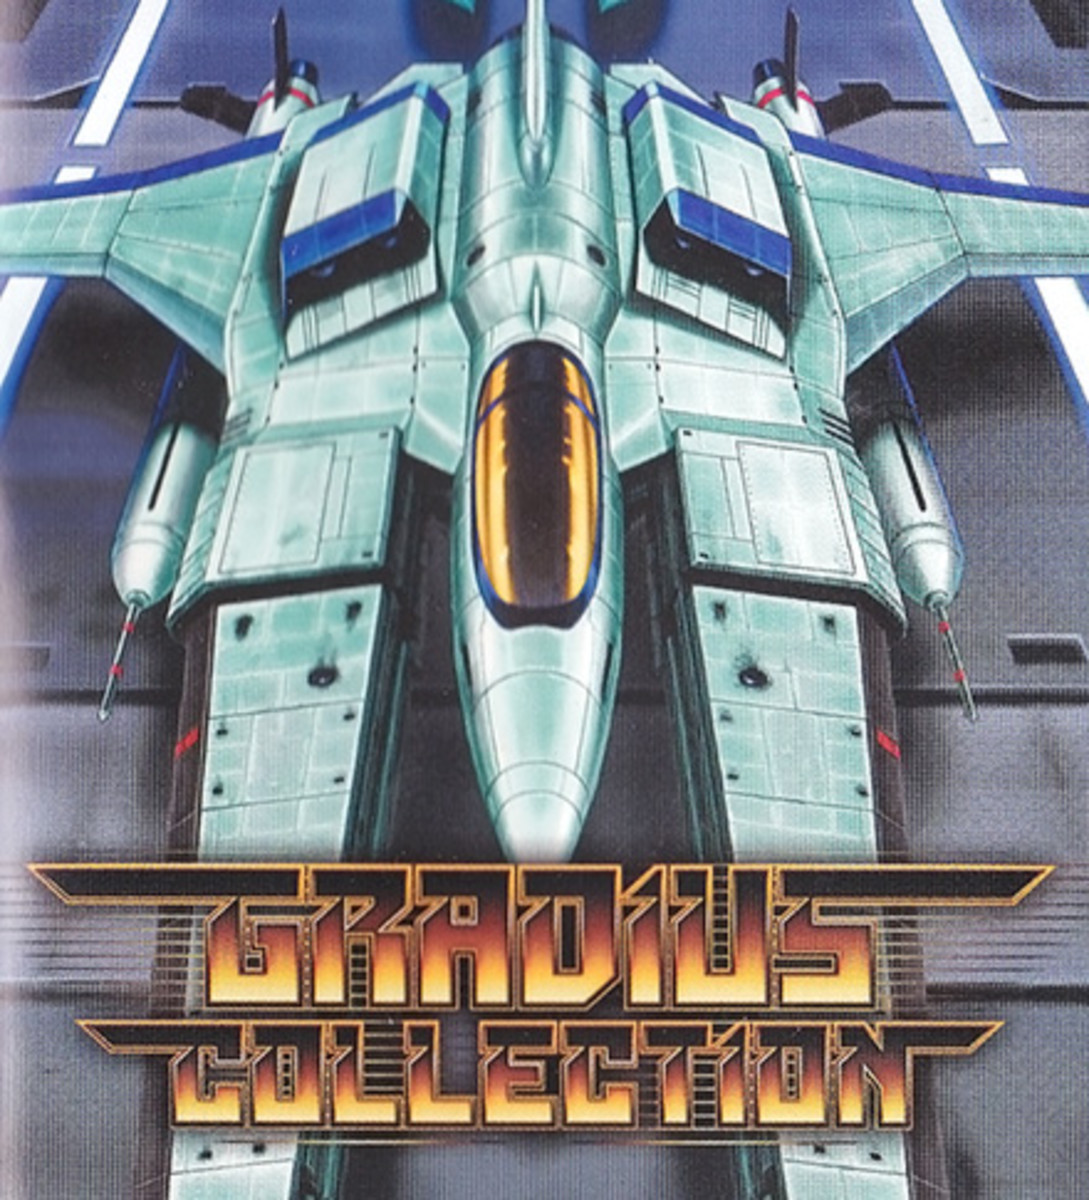 The Gradius Collection for the PSP is a great compilation of Gradius soundtracks